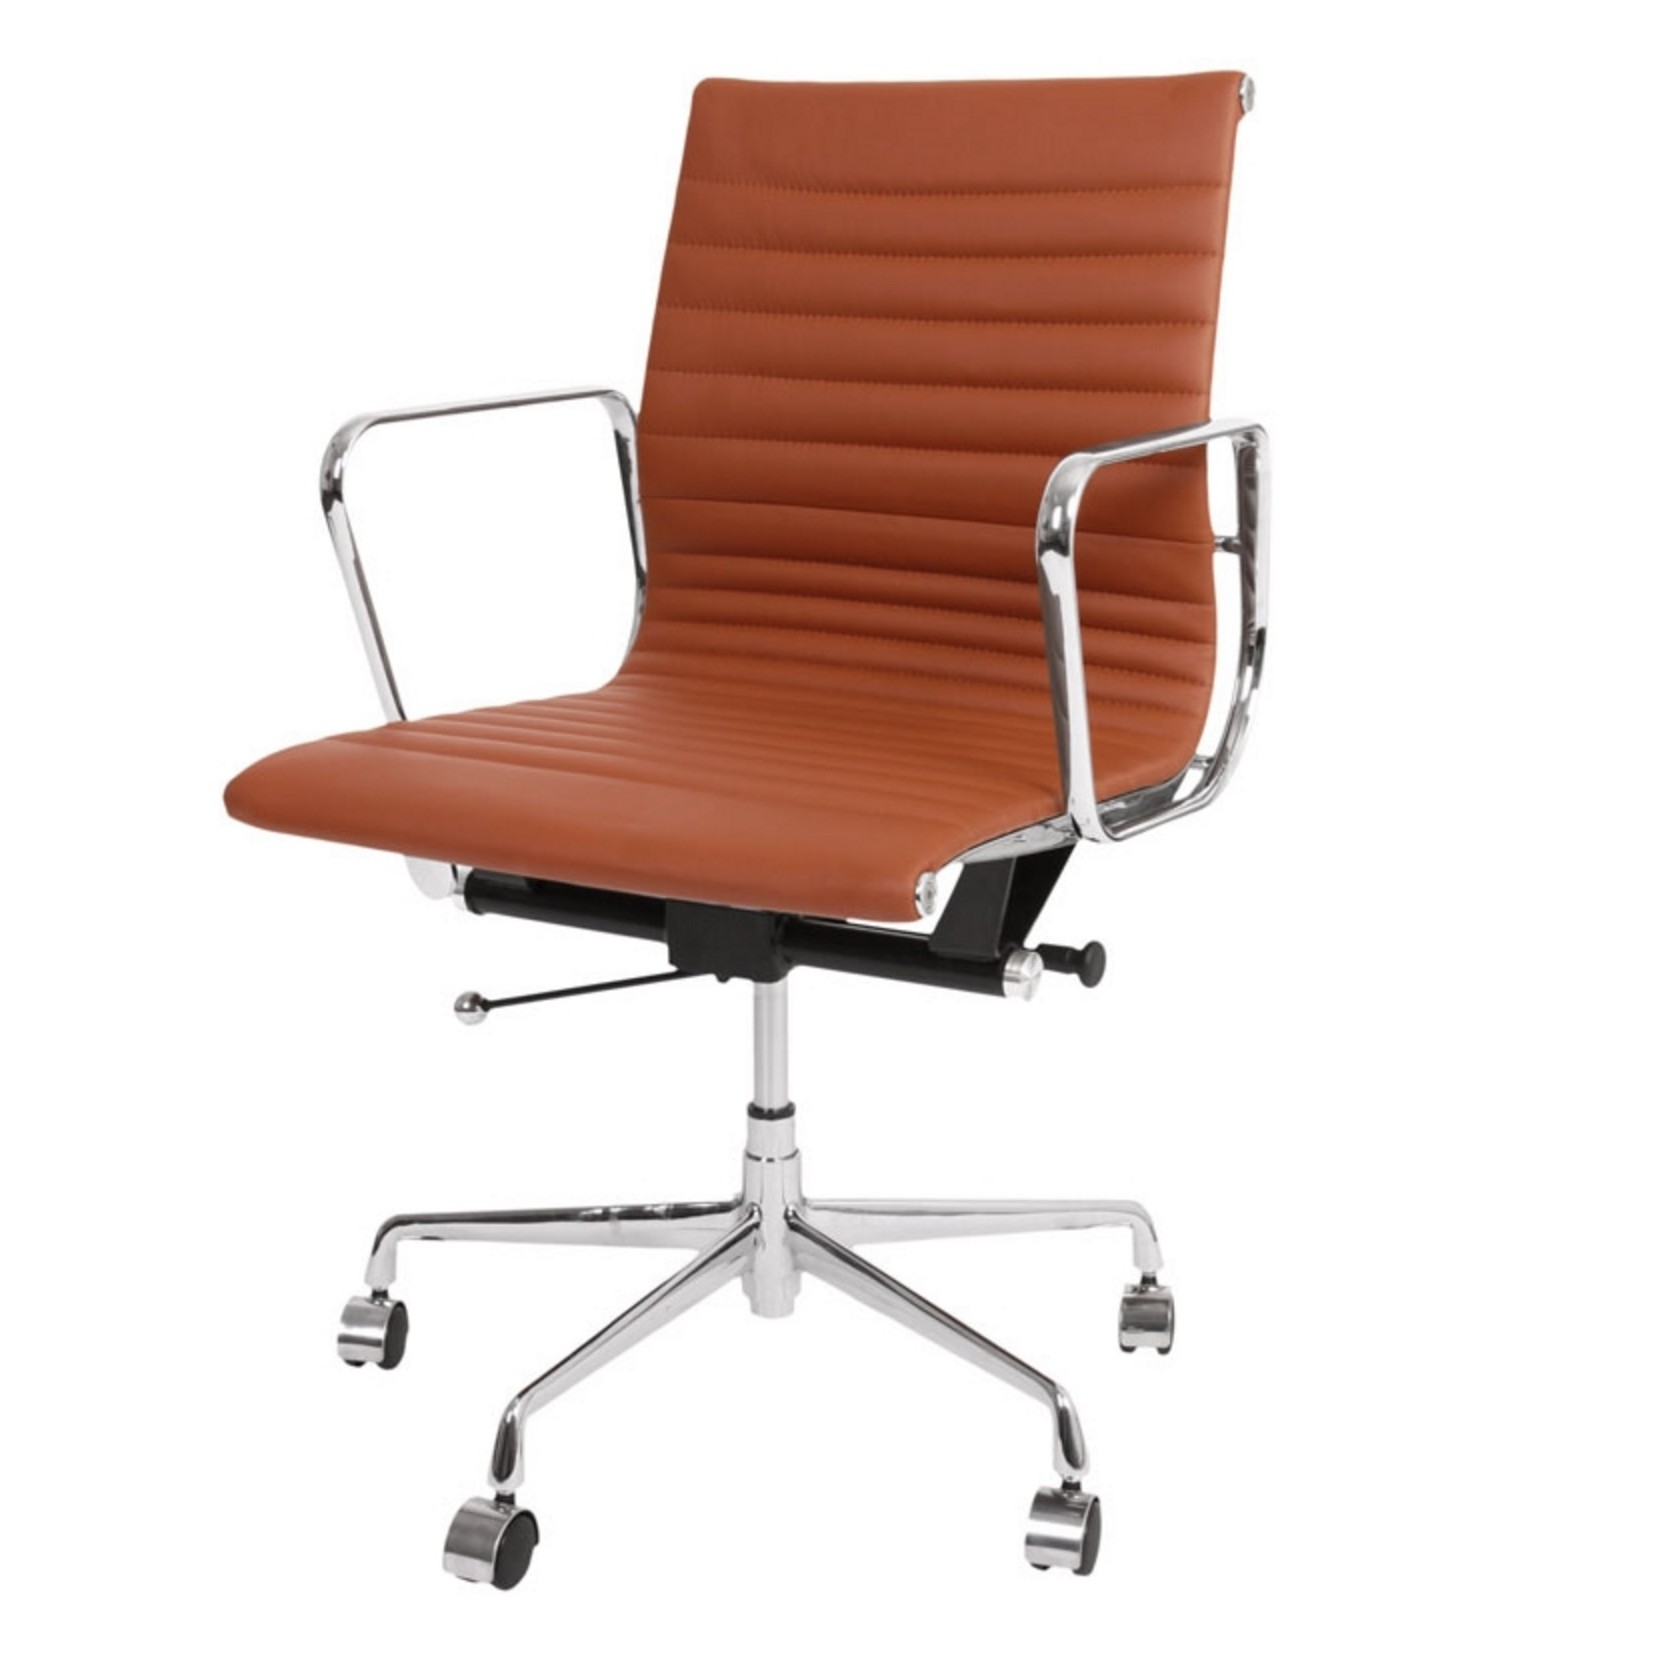 Tan leather office chair -  Mid Back Aluminum Office Chair White Italian Leather